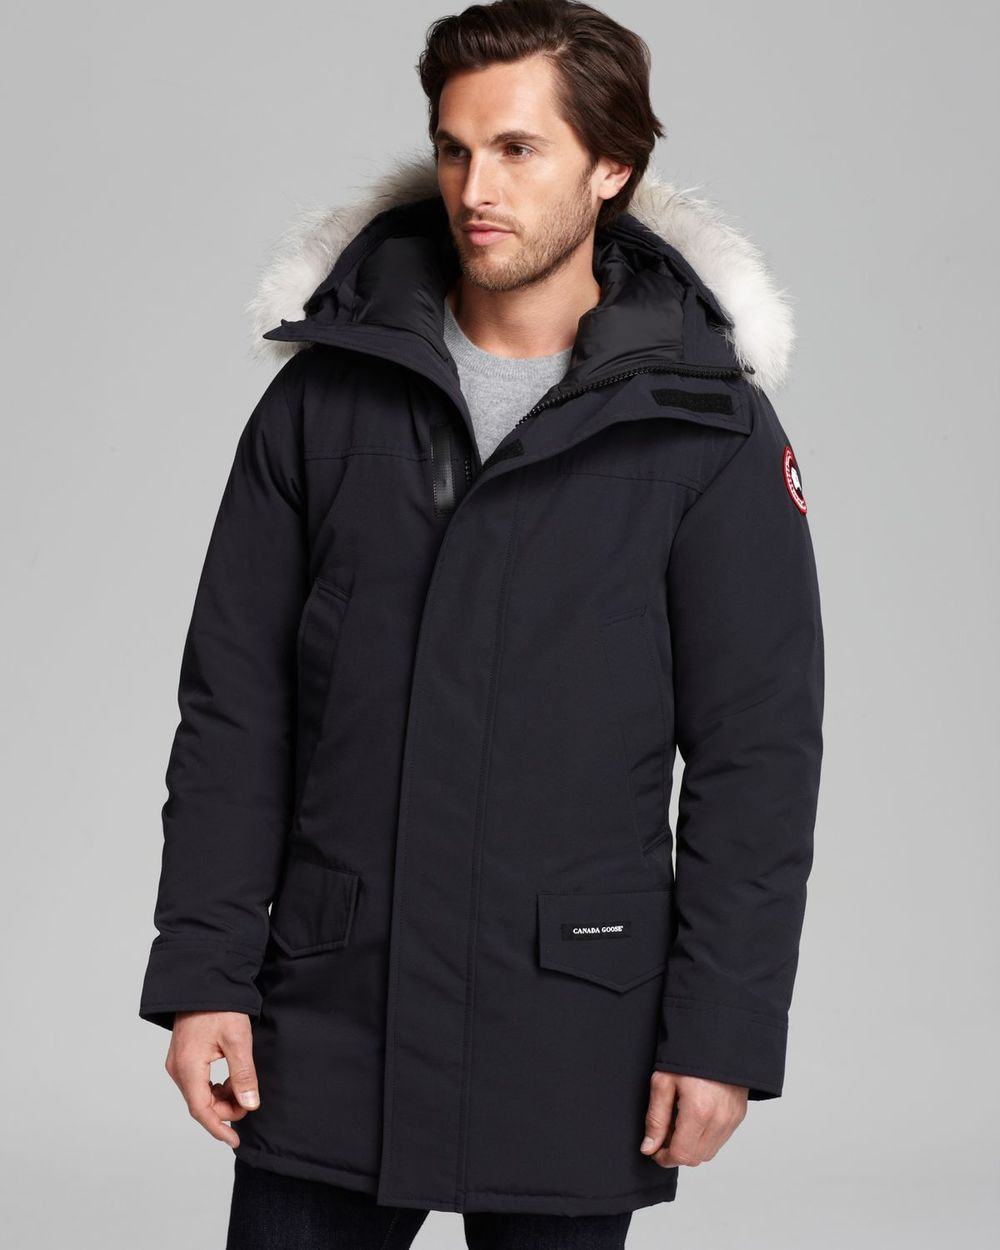 Canada Goose Jacket Retailers Uk